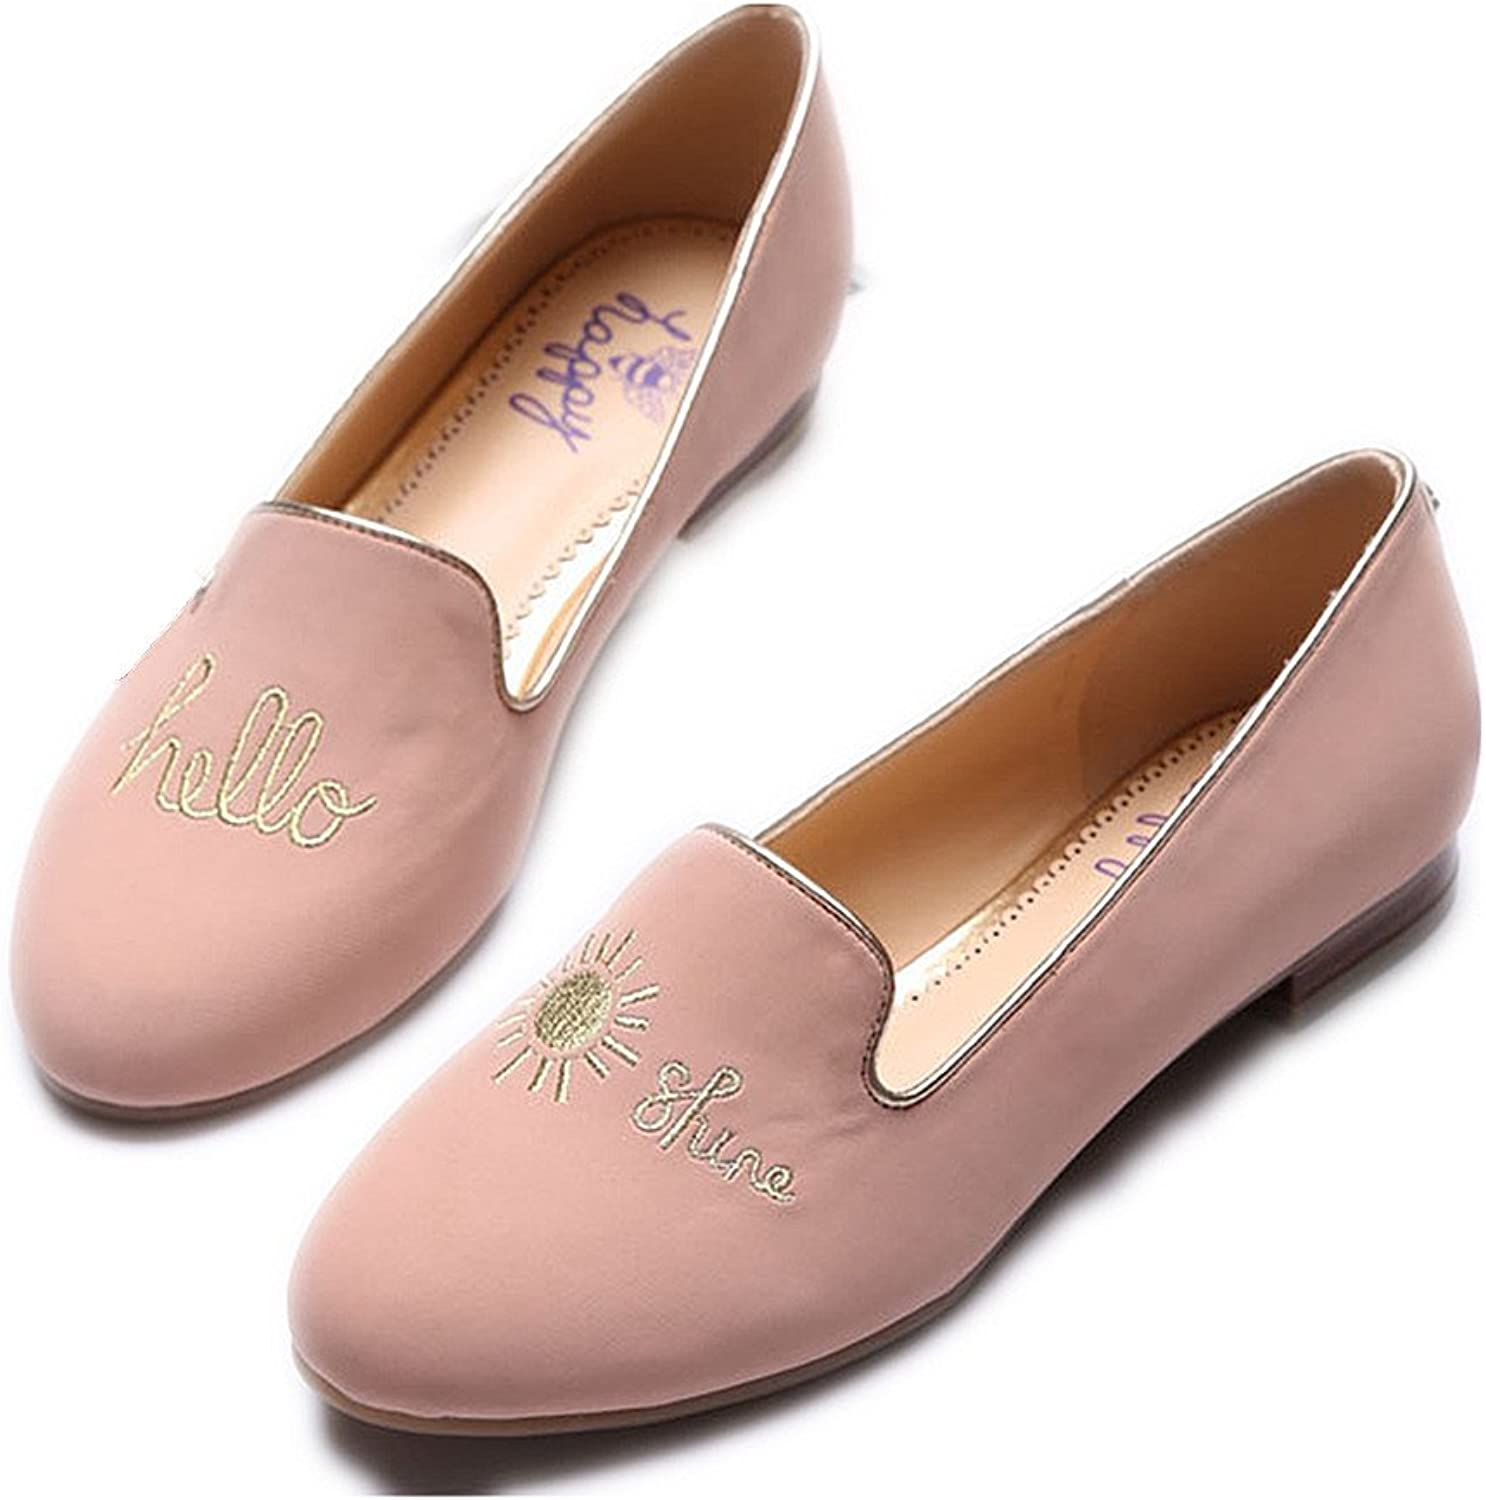 C. Wonder Time Hello Sunshine Espadrilles Loafers Slipper Flat shoes for Womens Pink